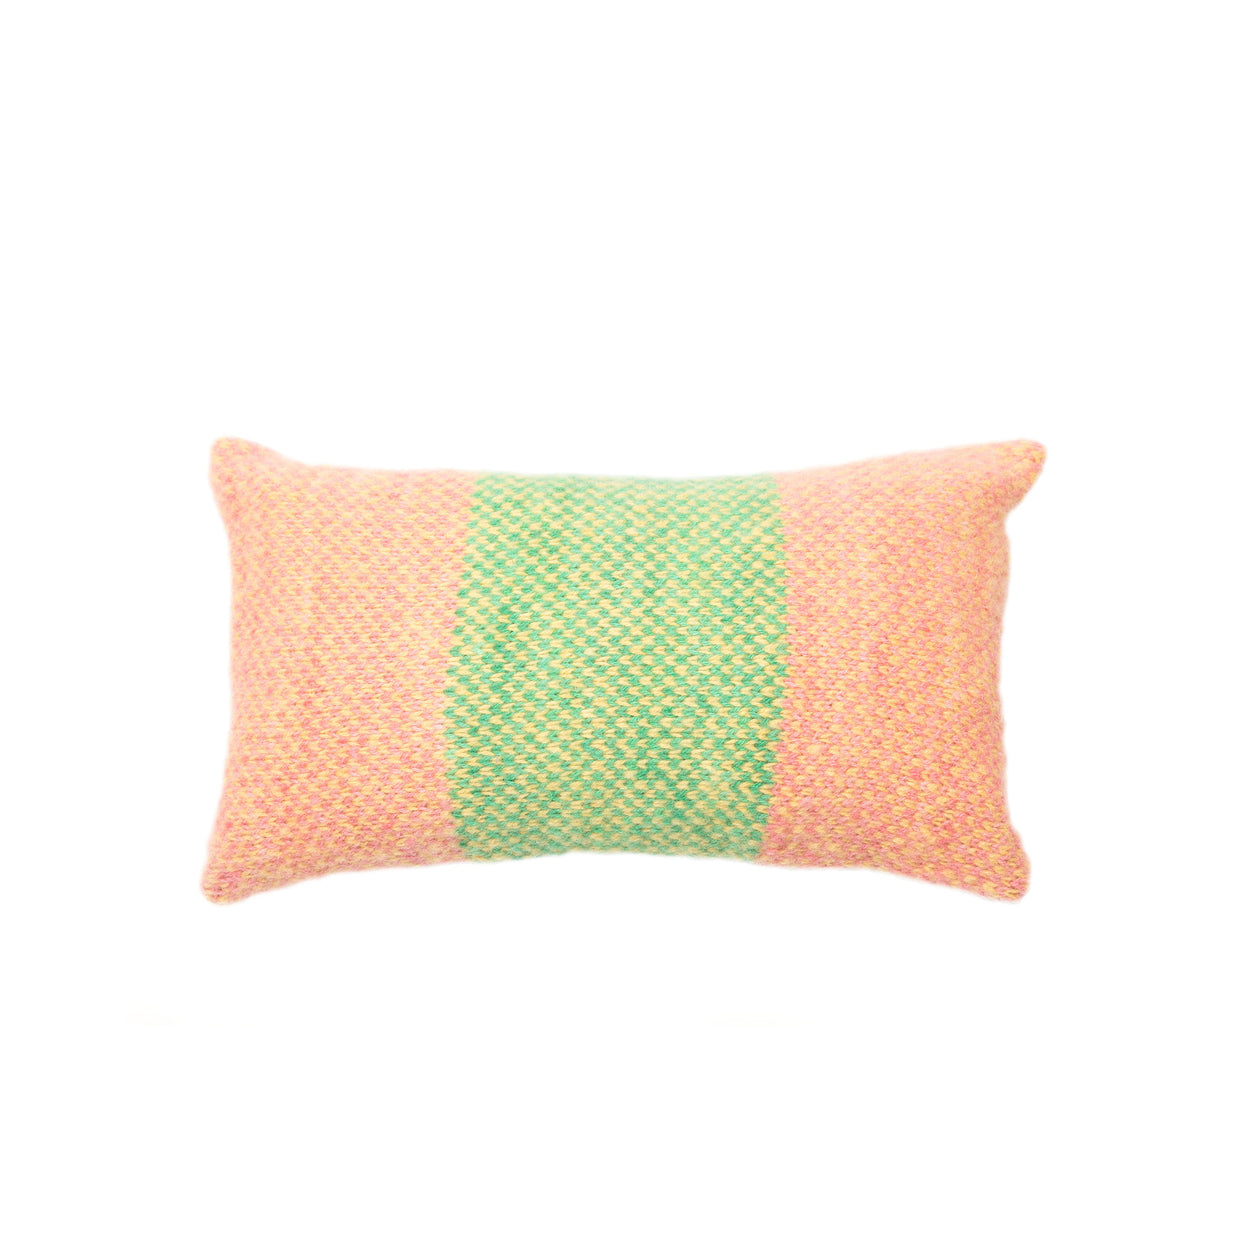 Storyteller Studio - Citrus Fruit Pillow